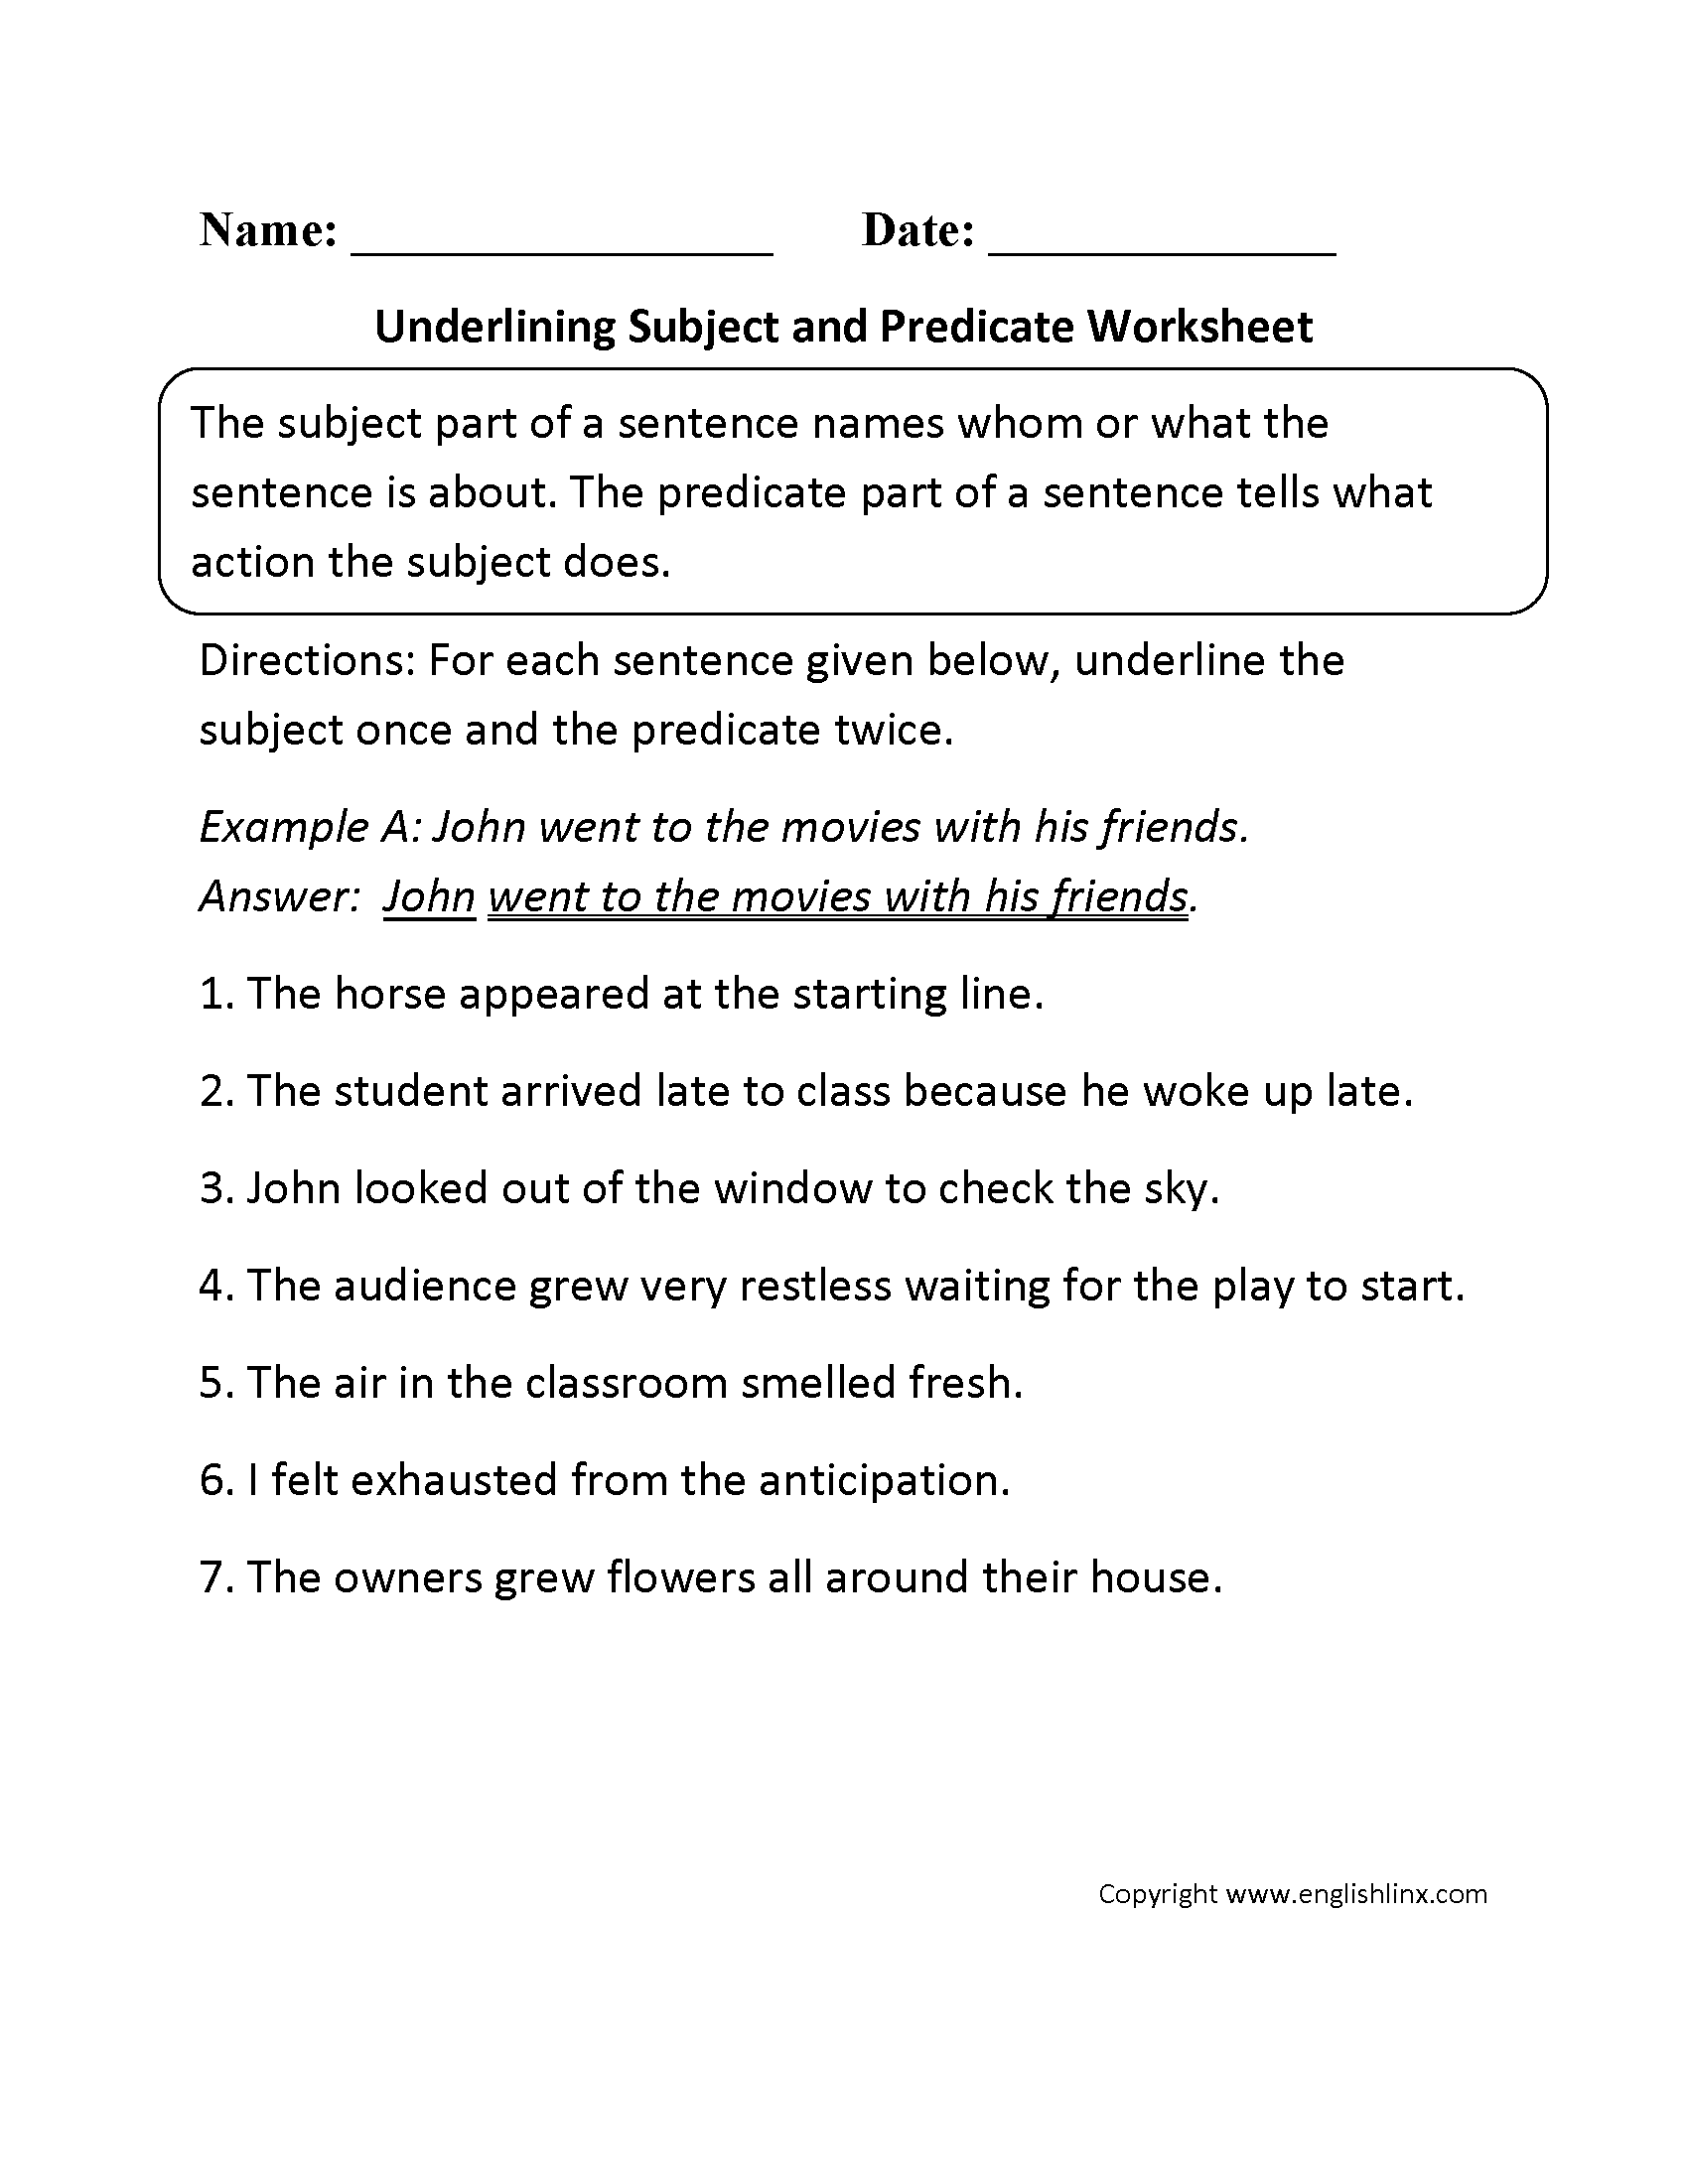 pound Direct Object Worksheet Parts Of A Sentence Worksheets Best additionally  moreover  also noun verb sentences worksheets also  moreover Parts of a Sentence Worksheets   Subject and Predicate Worksheets together with  in addition Parts Scrambled Spanish Sentences Worksheet   TpT additionally How to Diagram Sentences  13 Steps  with Pictures    wikiHow also bining subjects worksheets moreover Parts of a Sentence Worksheets   Free Printables   Education also Grammar Worksheets   Parts of a Sentence Worksheets besides  moreover Sentence  position  Single and Multi Clauses Worksheet   Elace in addition Subject and Predicate Worksheet   Grammar   Subject  predicate additionally cursive writing sentences worksheets. on parts of a sentence worksheet